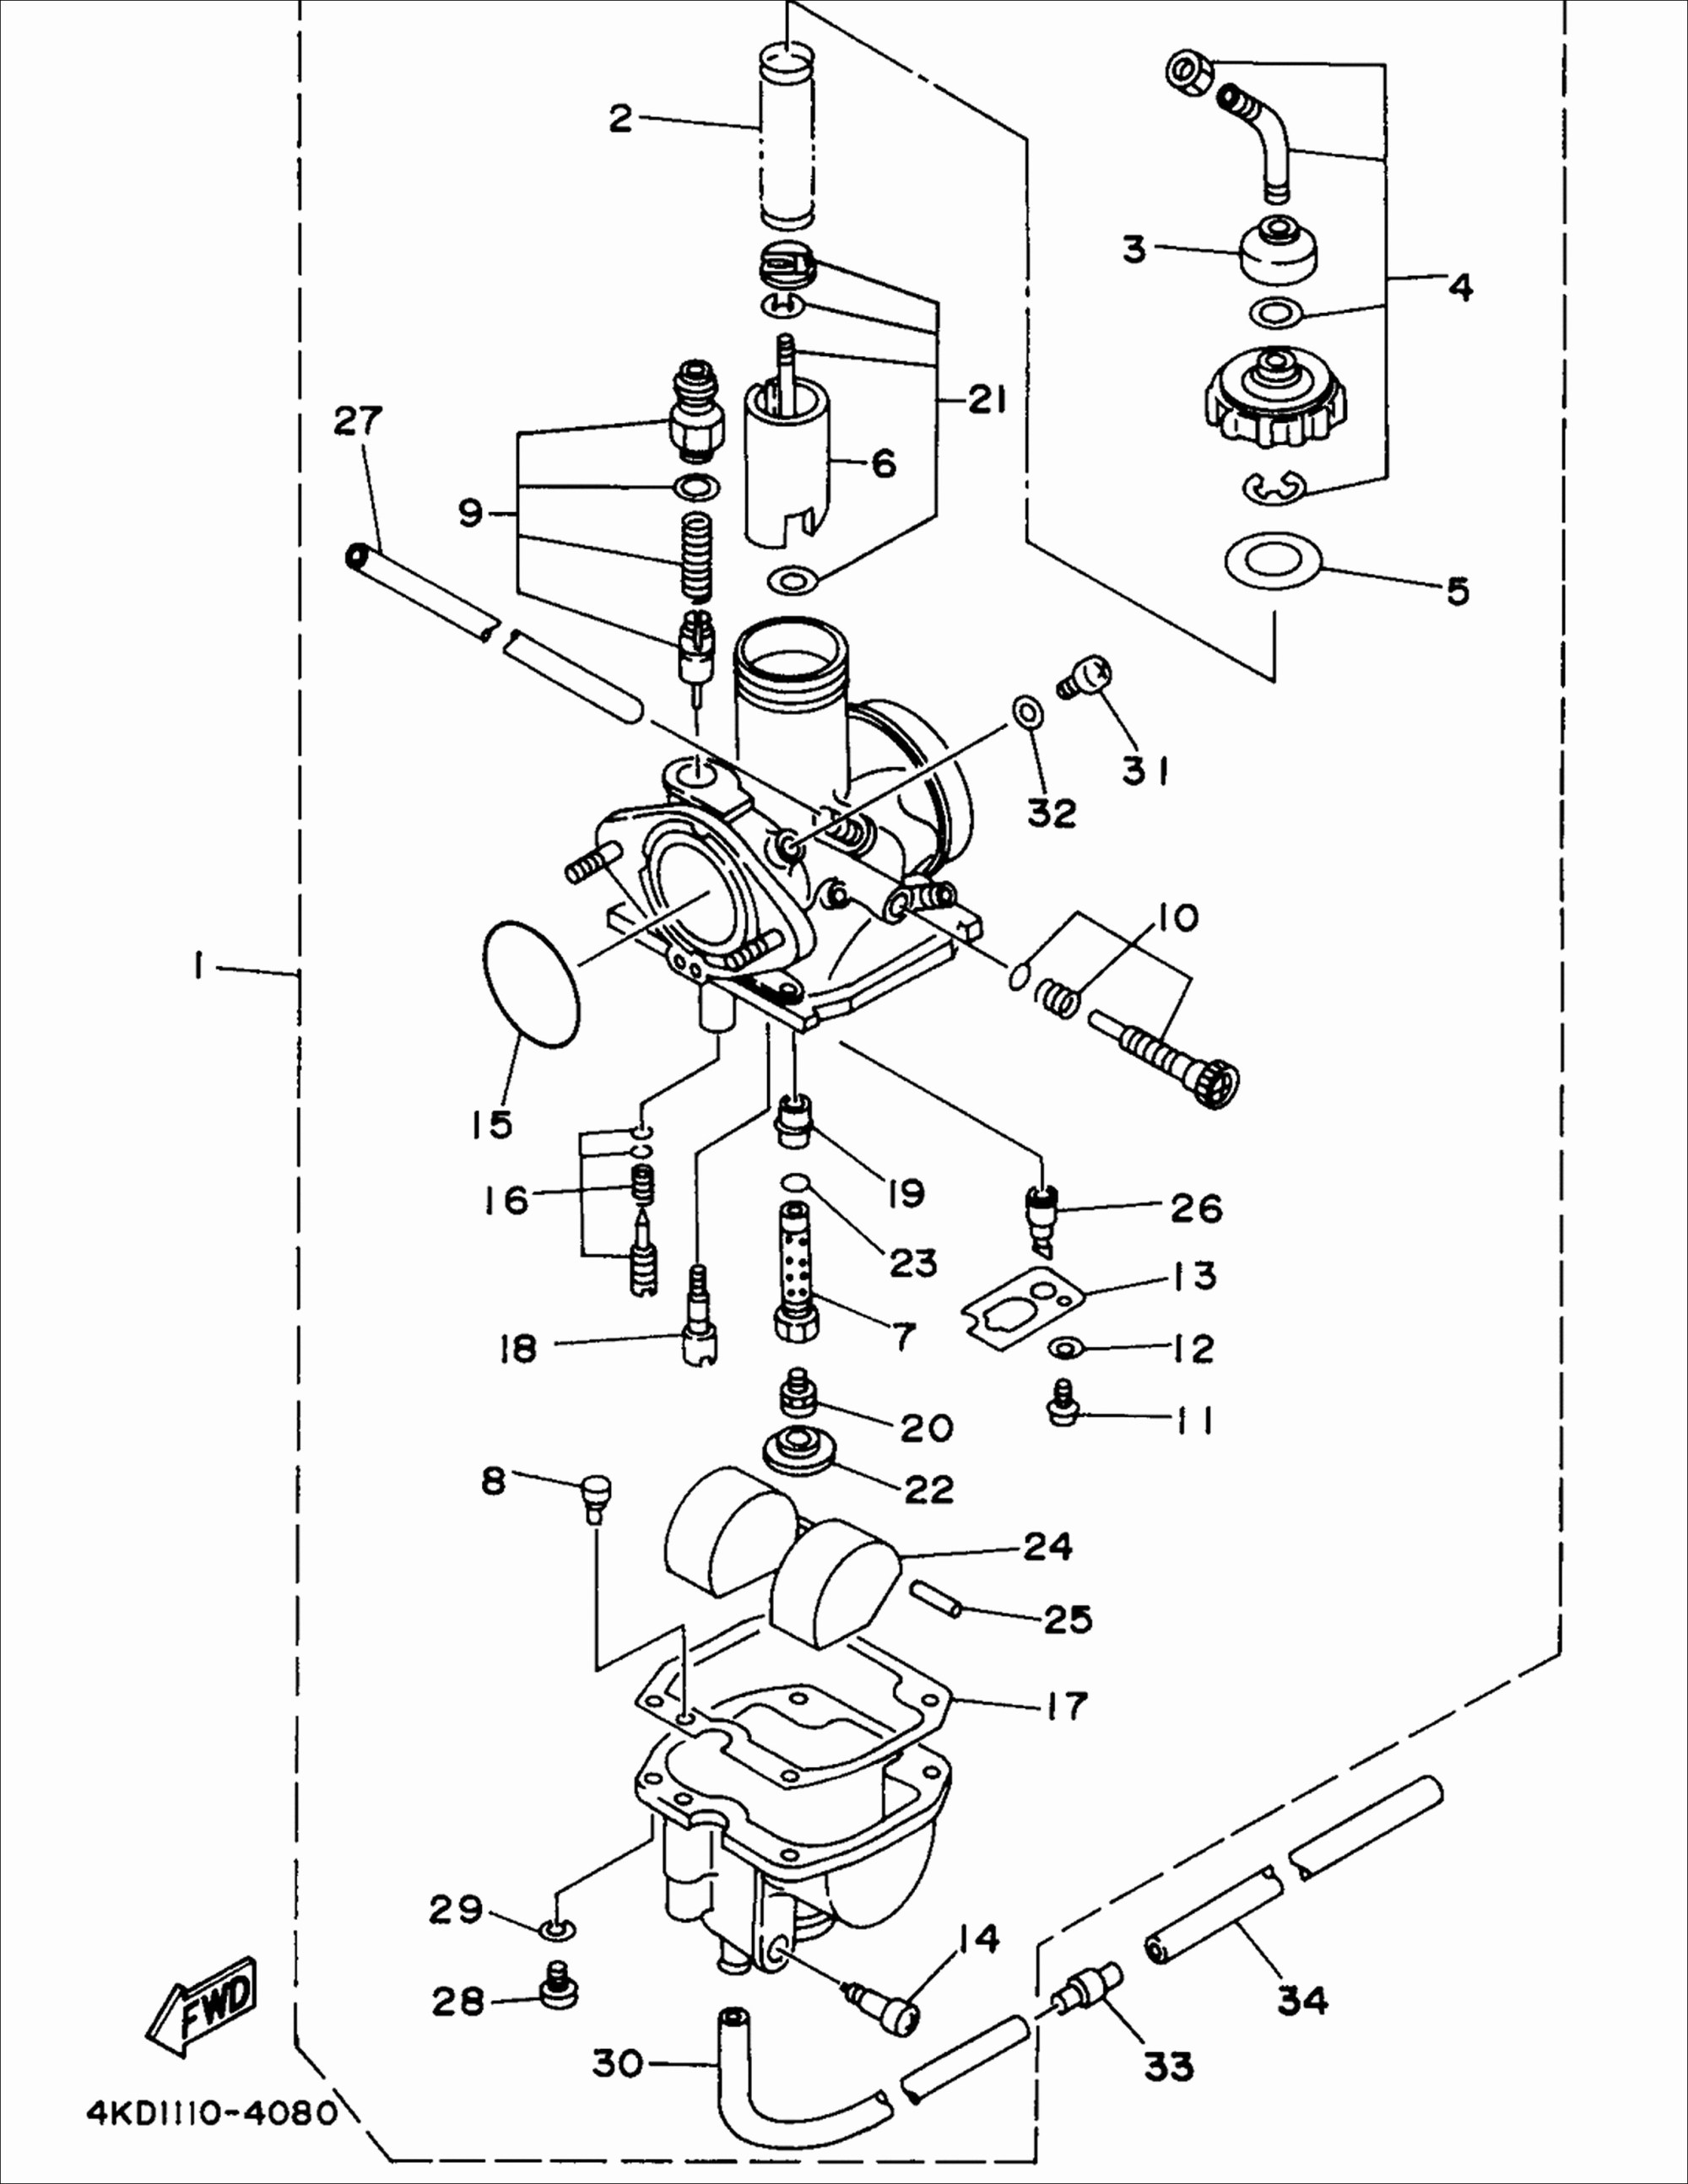 hight resolution of 2003 mitsubishi montero sport electrical wiring wiring library1995 mitsubishi mirage ls engine diagram opinions about wiring